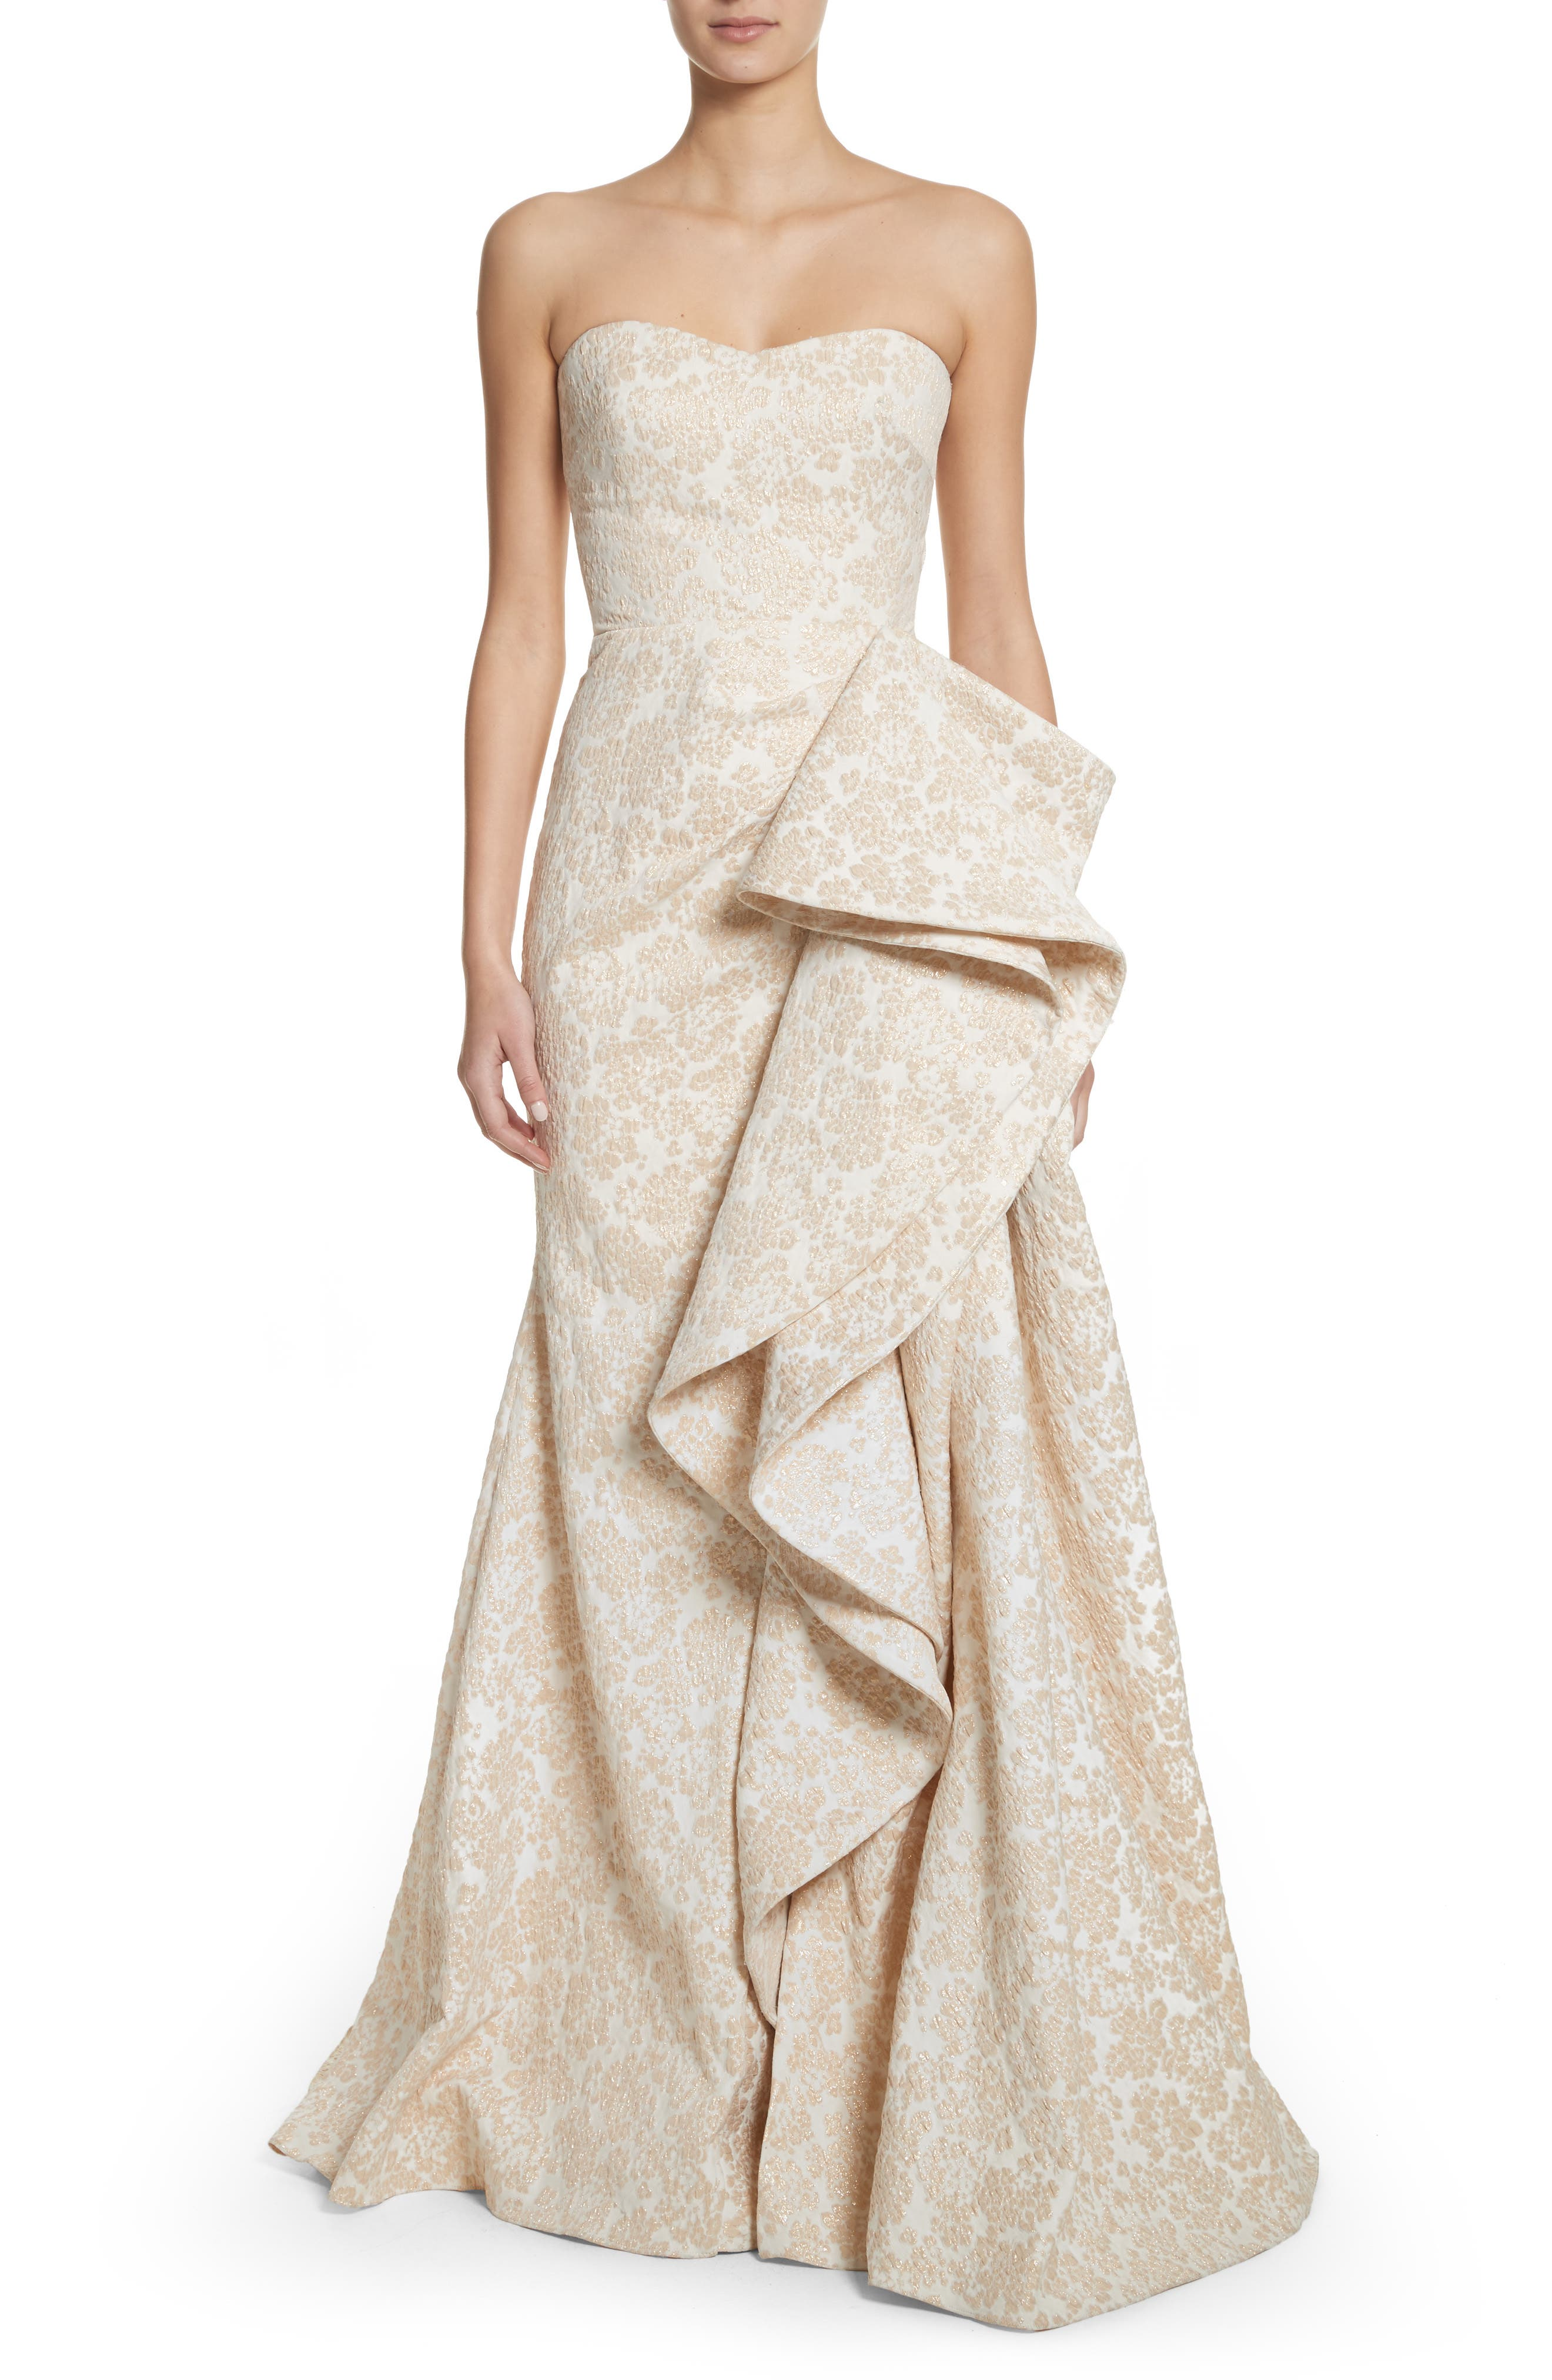 Platinum Sculptural Ruffle Gown,                         Main,                         color, Ivory Gold